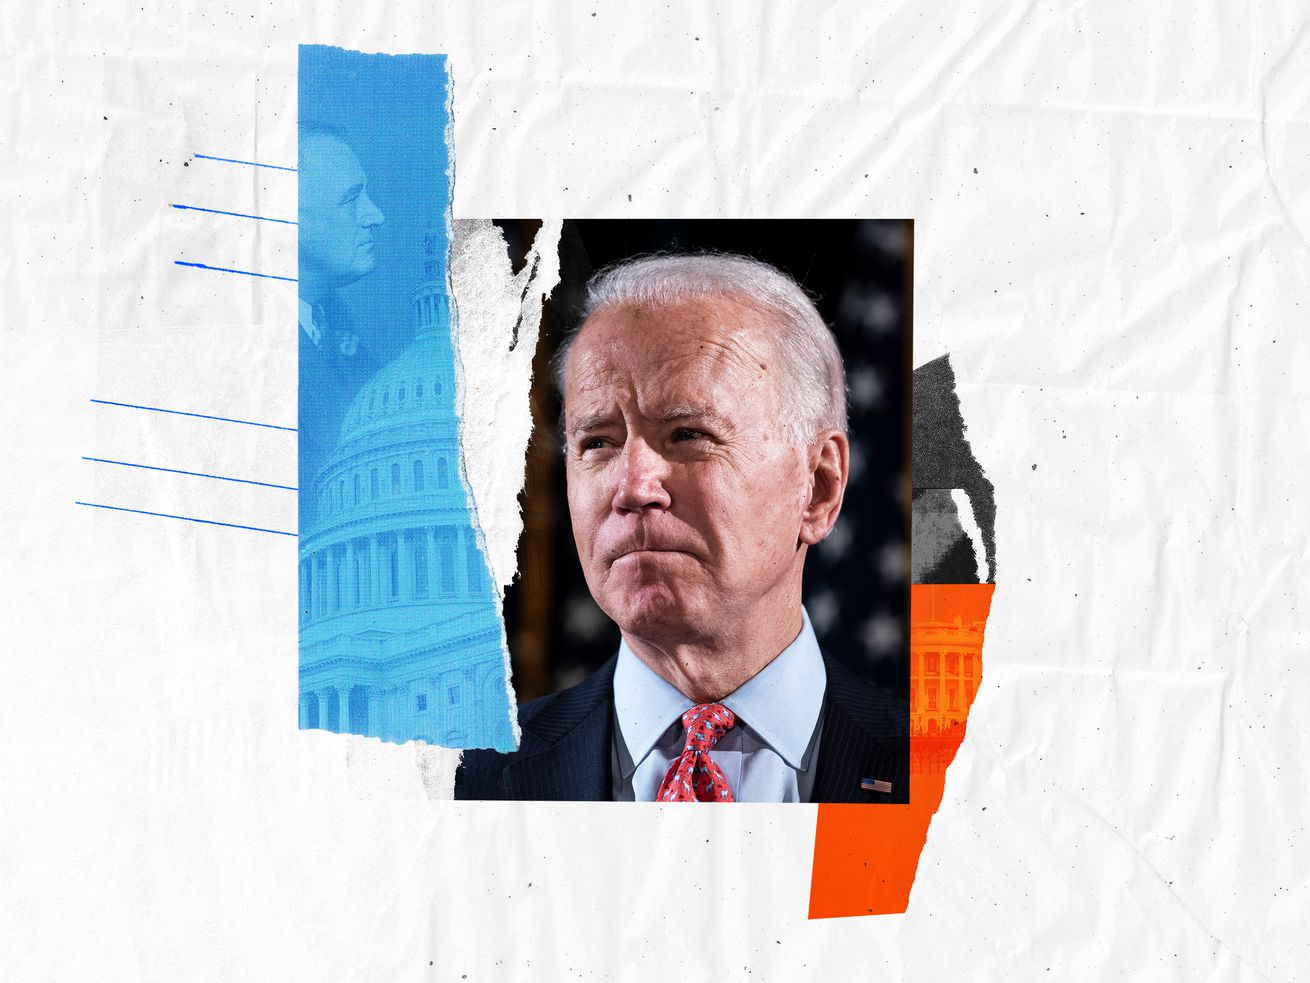 A Biden Presidency: The Democratic nominee's policy vision, explained